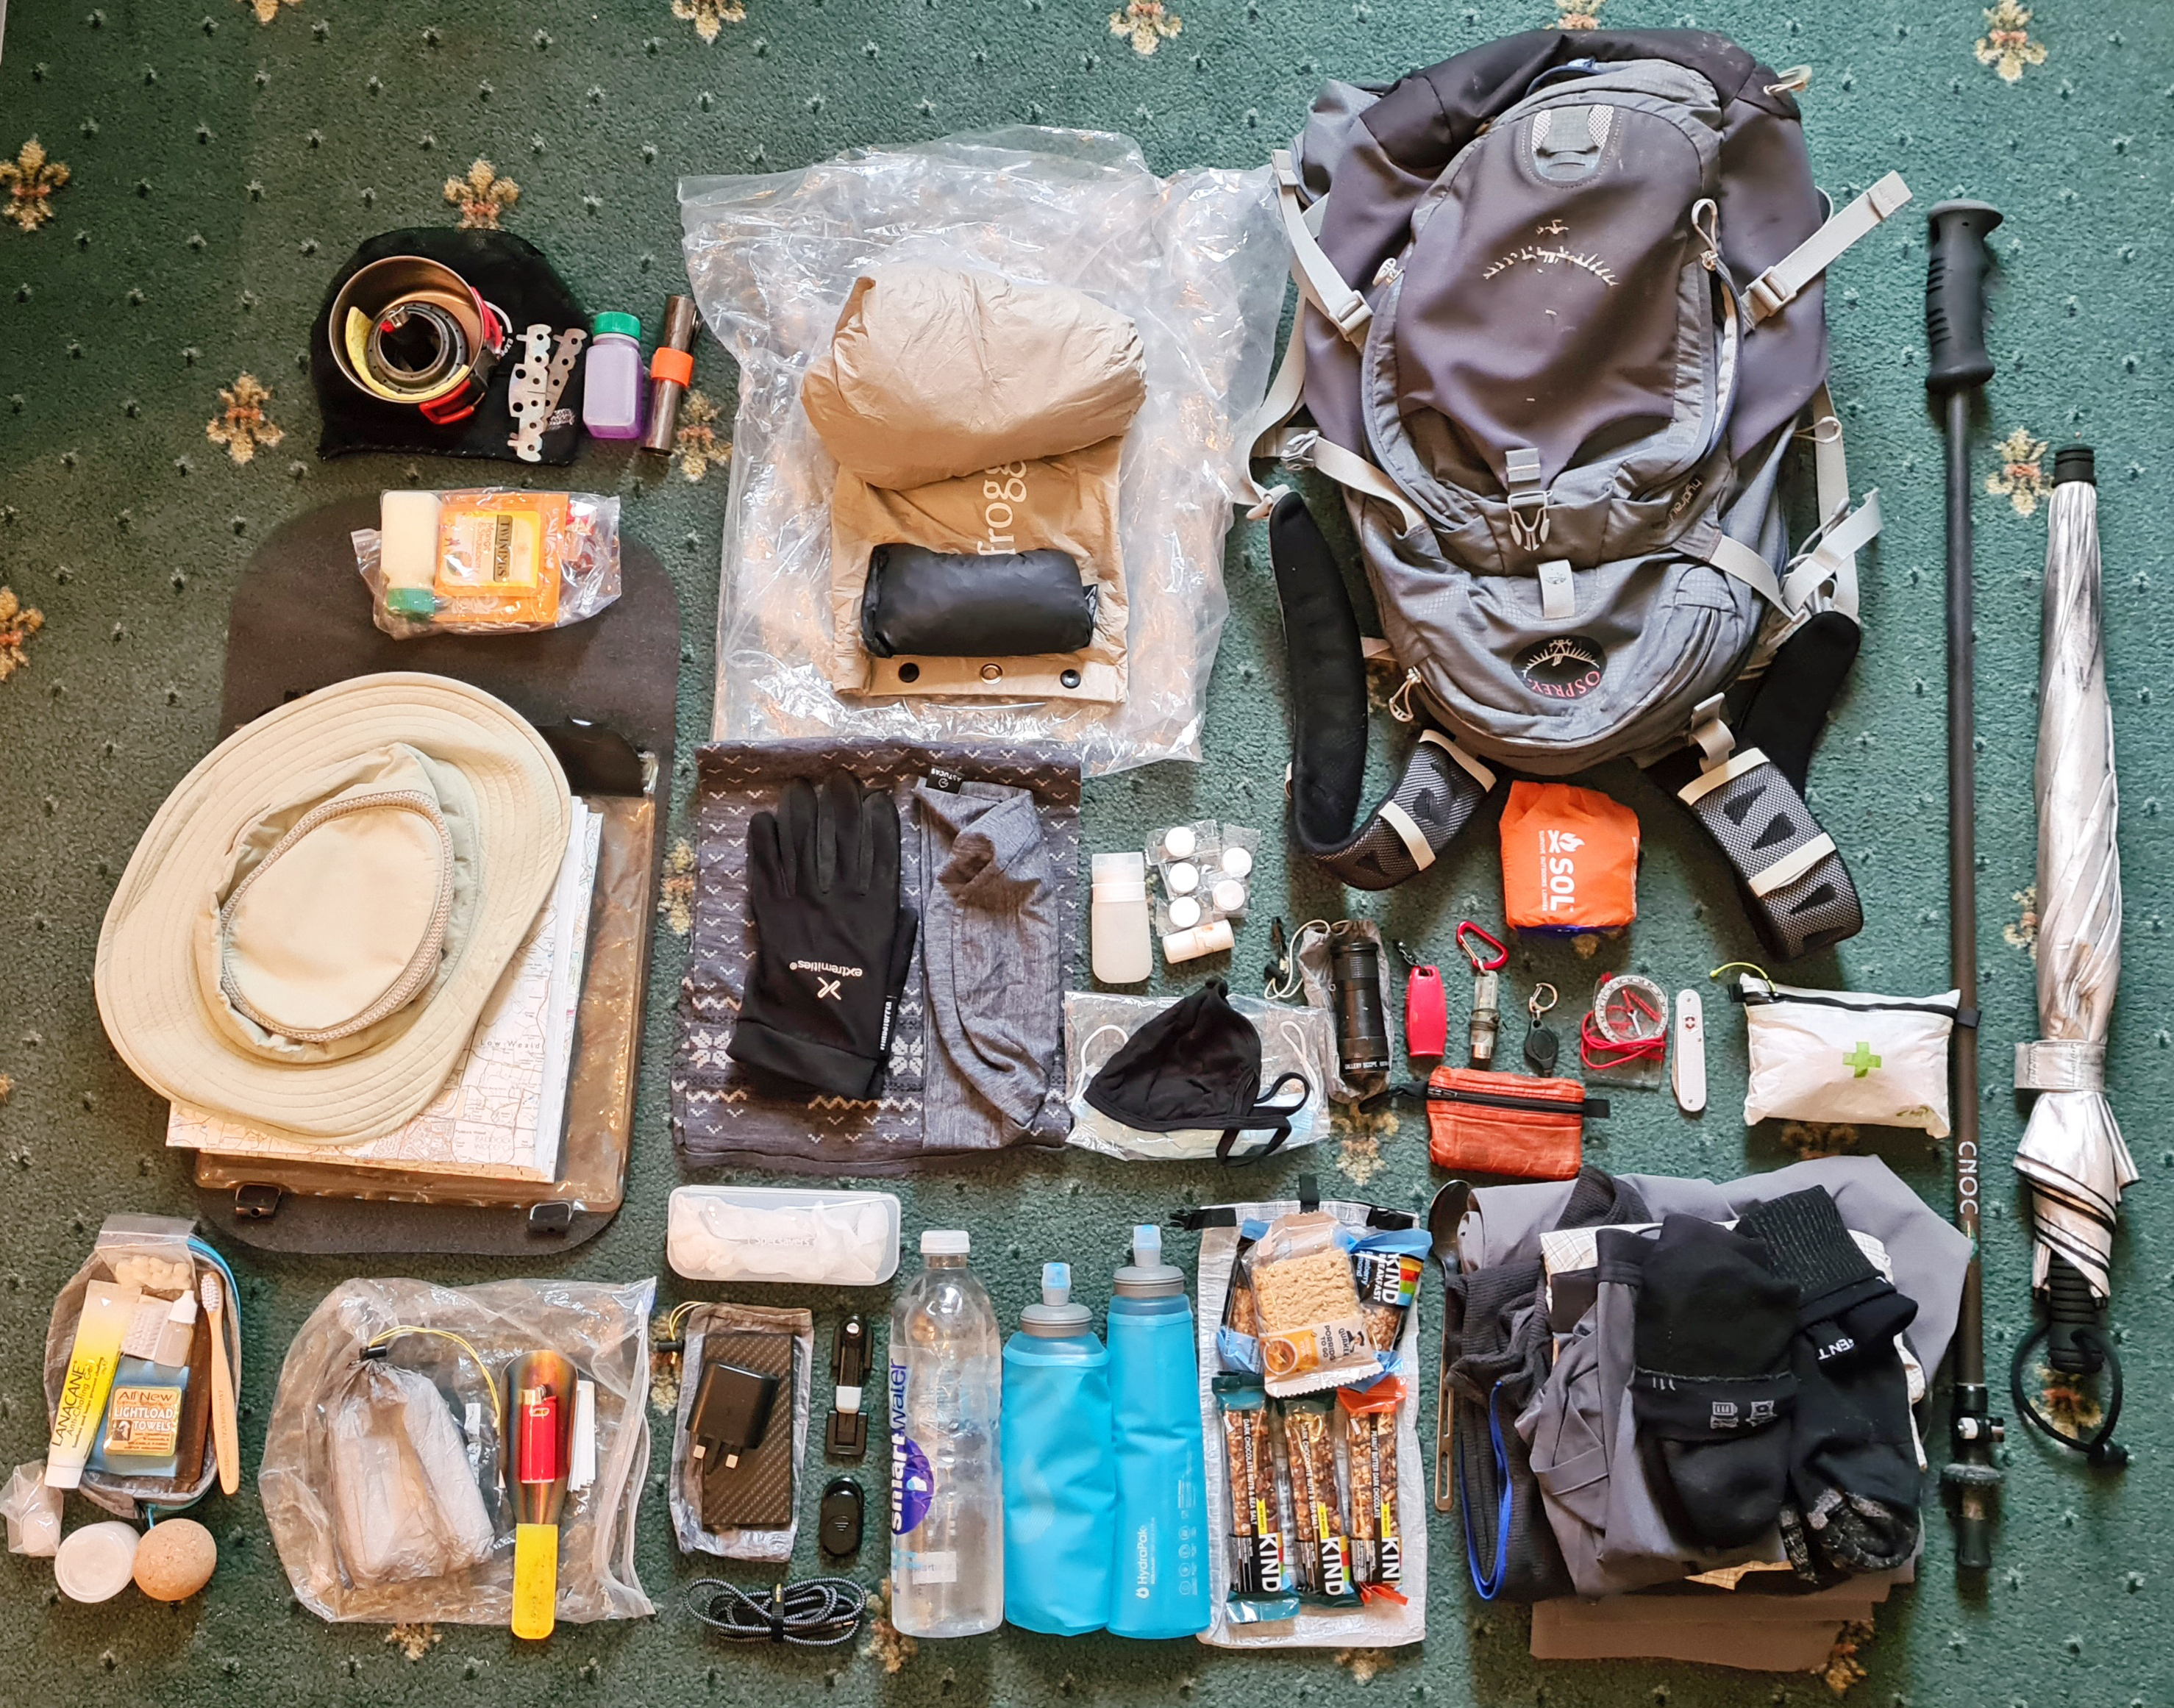 Expecting a range of weather conditions there was a fair amount of gear packed into my standard Osprey day pack for my two day hike. This included a clean set of town clothes for venturing out of an evening, and a small meths brew kit for each day